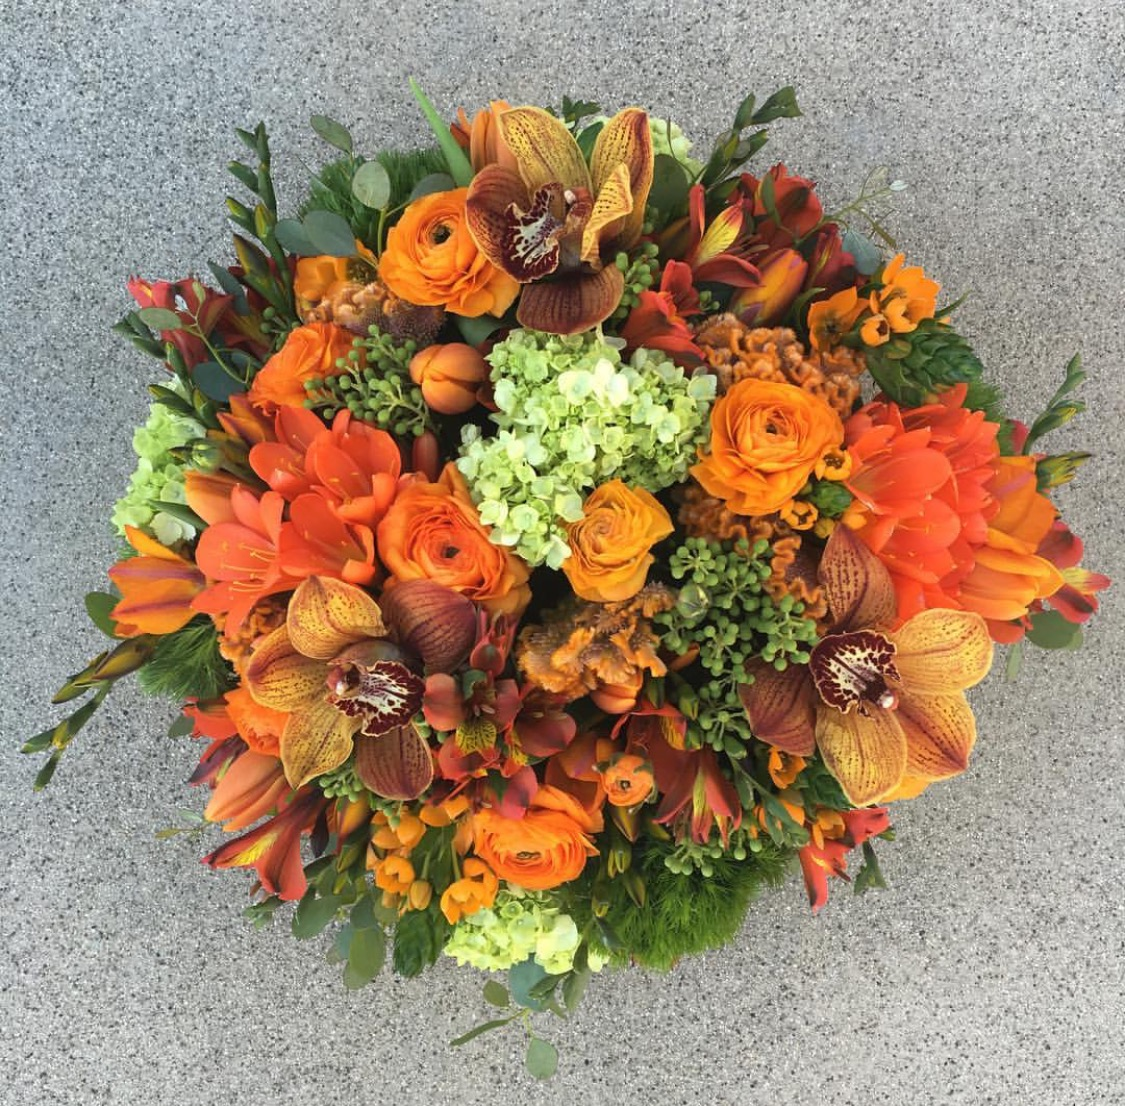 23. Orange Centerpiece